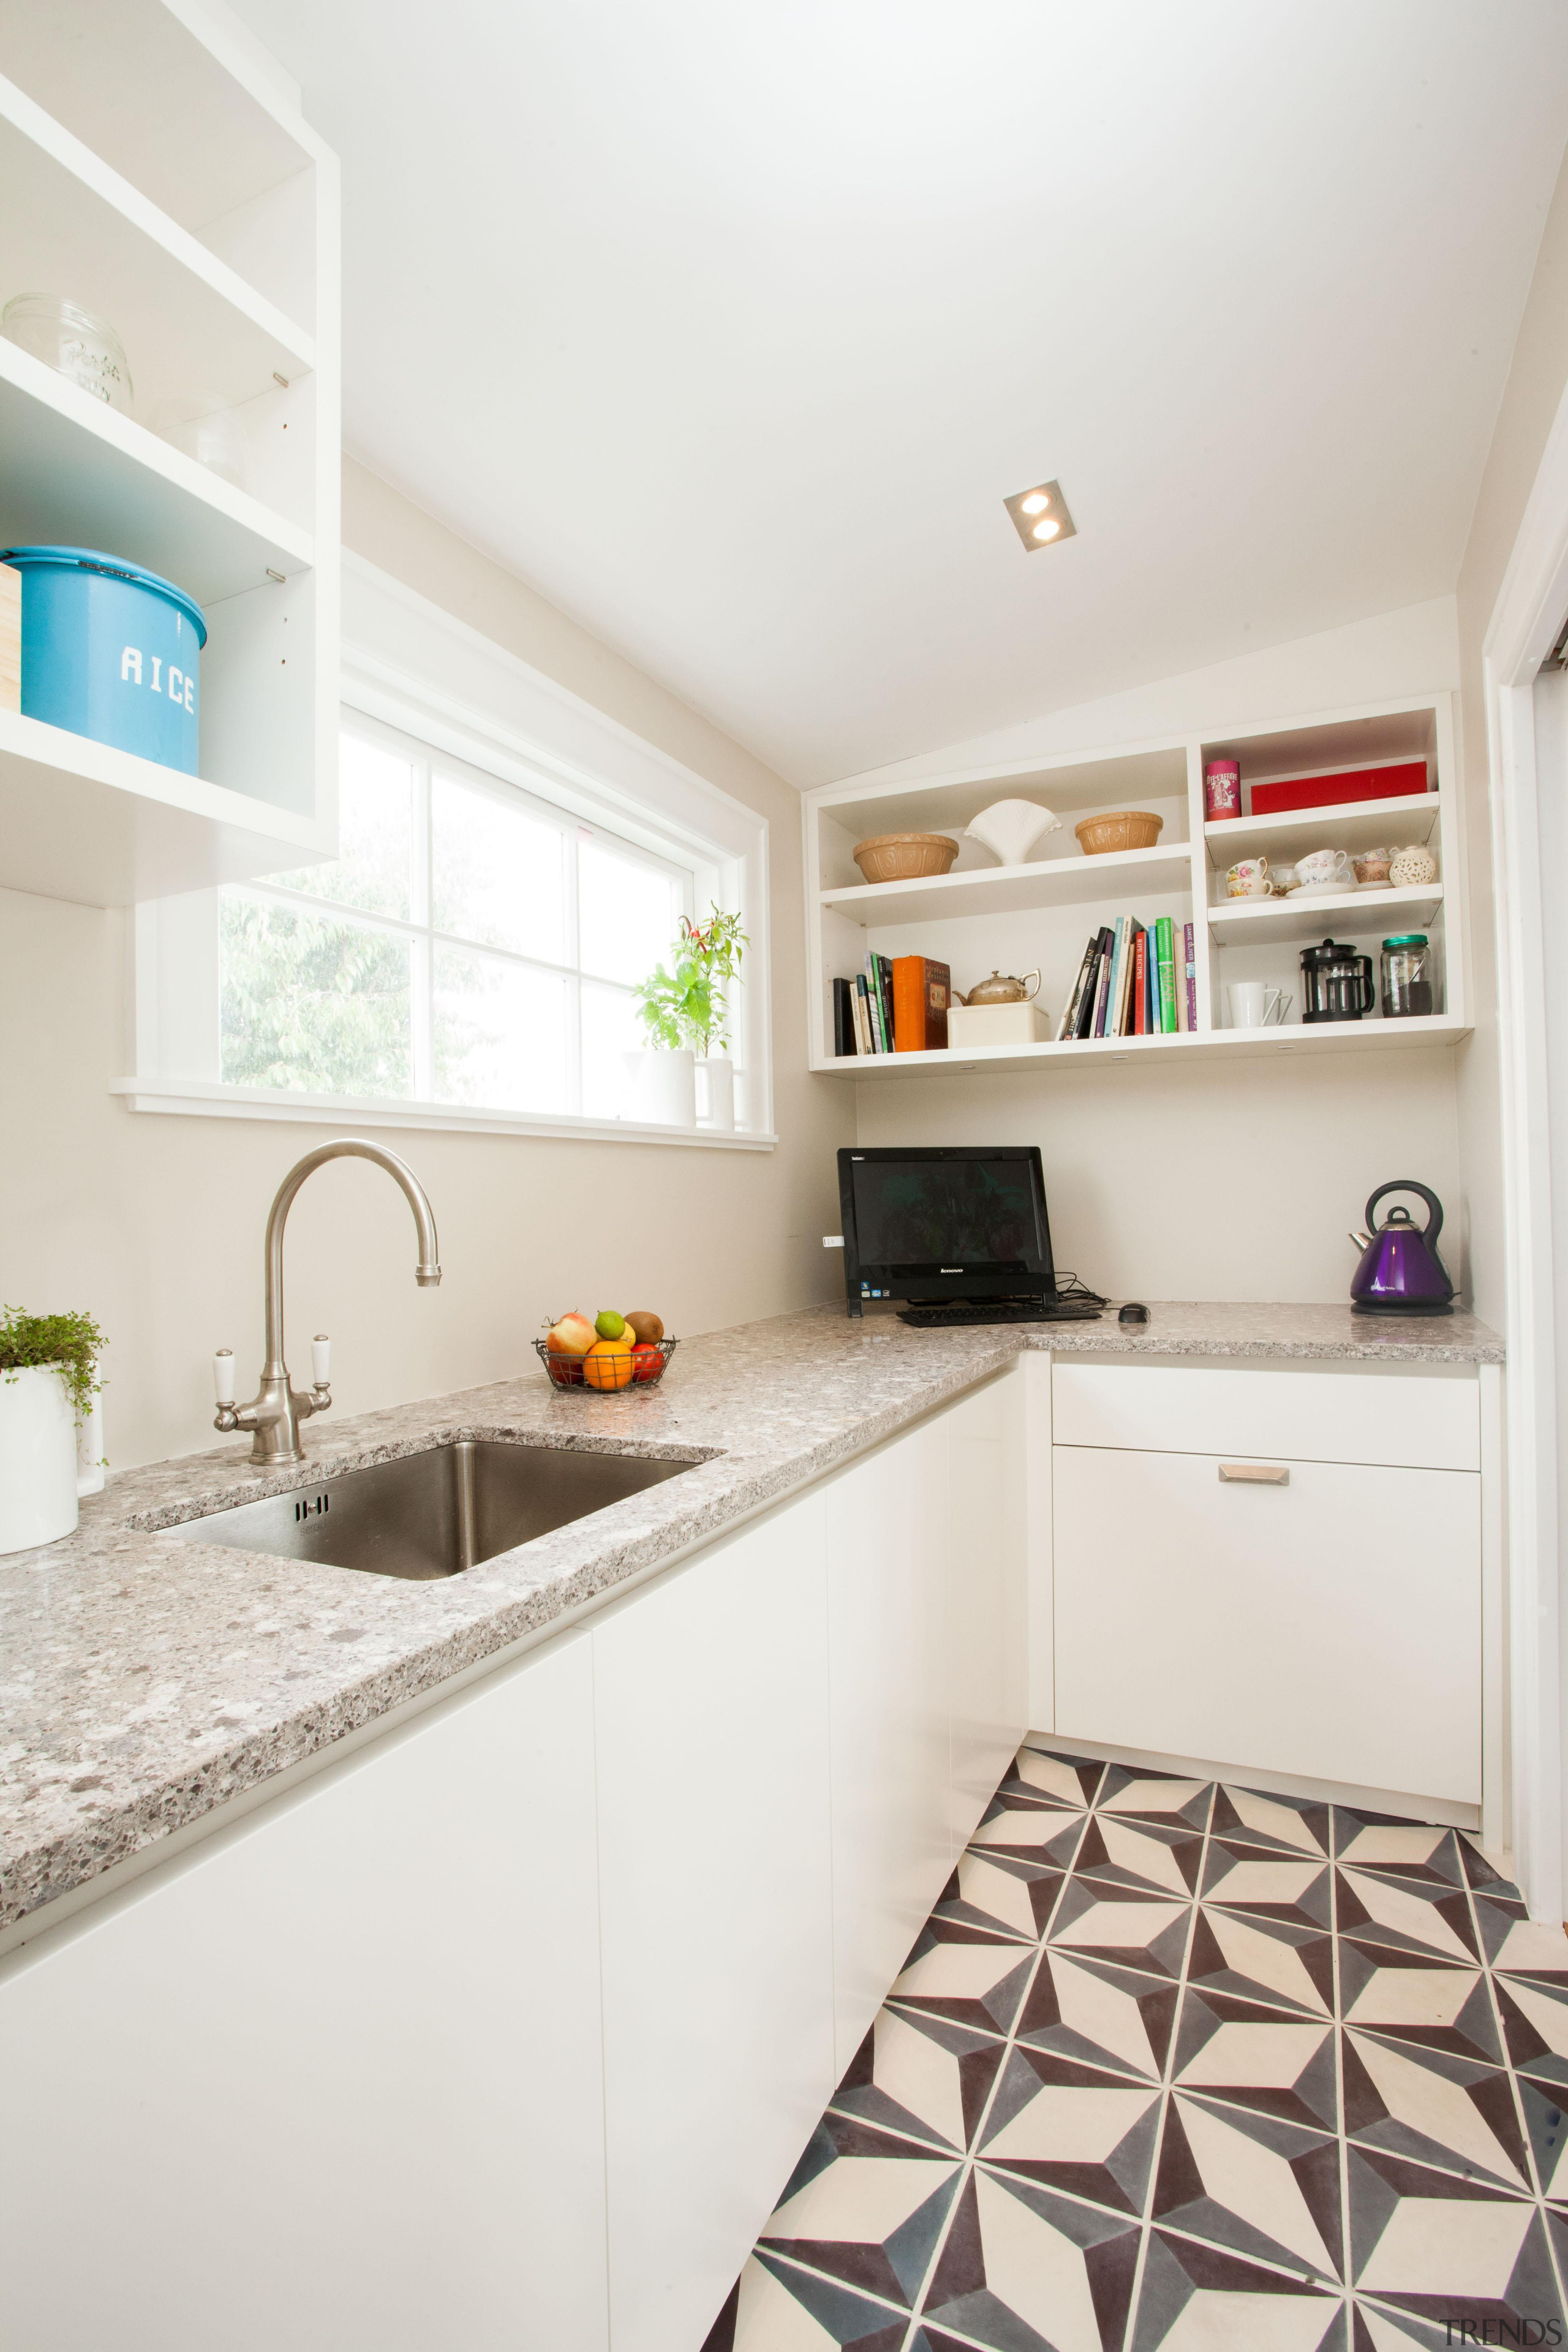 scp-30.jpg - cabinetry | countertop | floor | cabinetry, countertop, floor, home, interior design, kitchen, property, real estate, room, white